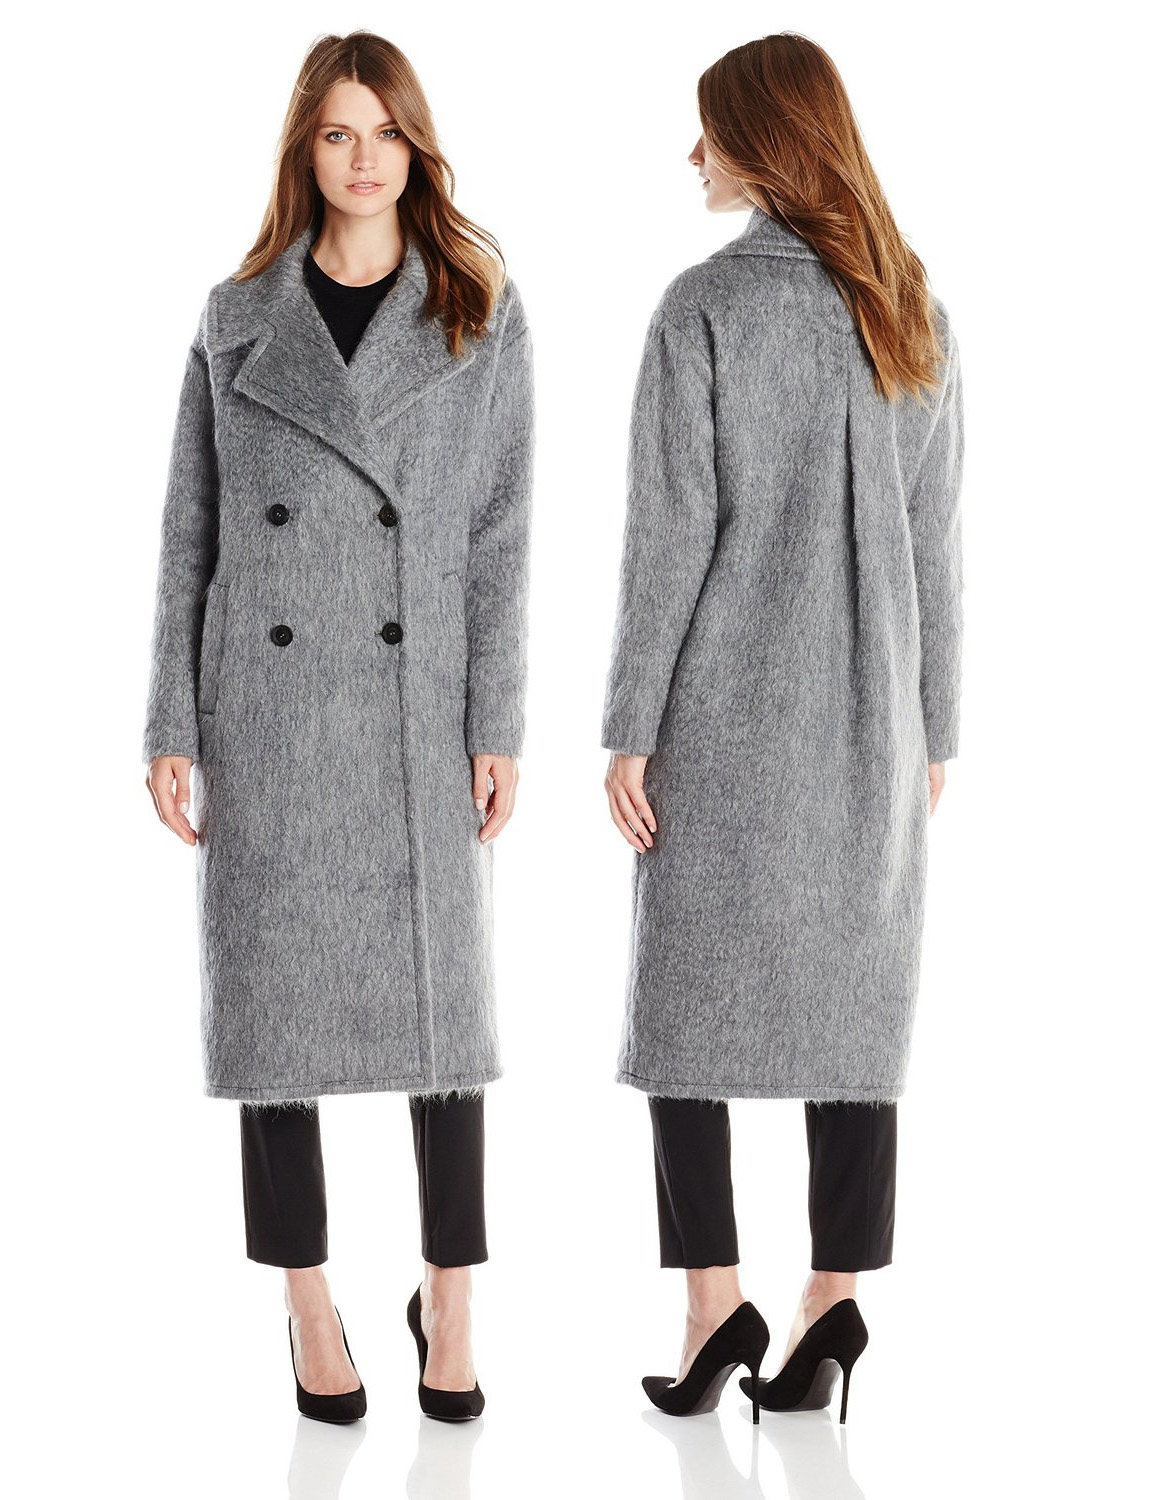 Images of Badgley Mischka Coat - Reikian